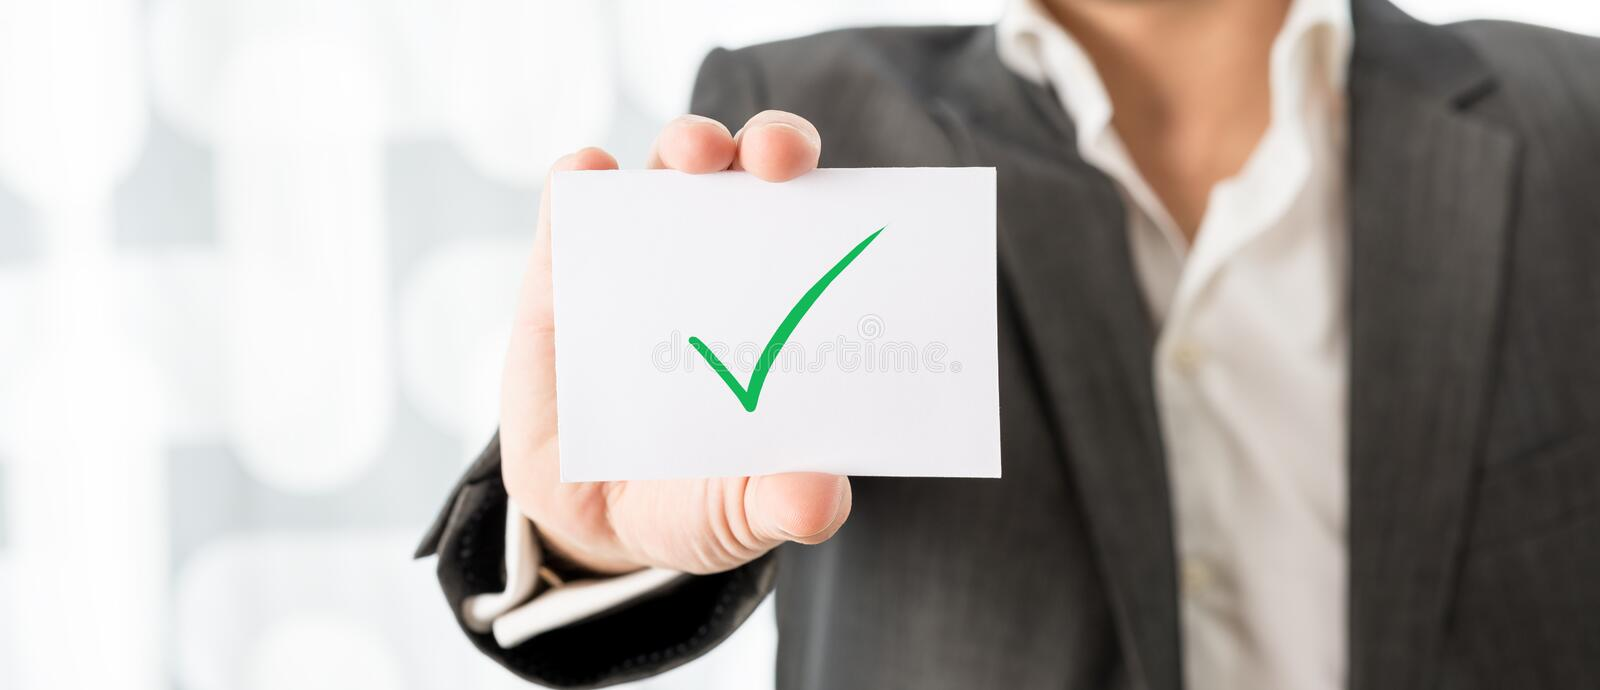 Successfully completed task royalty free stock photos